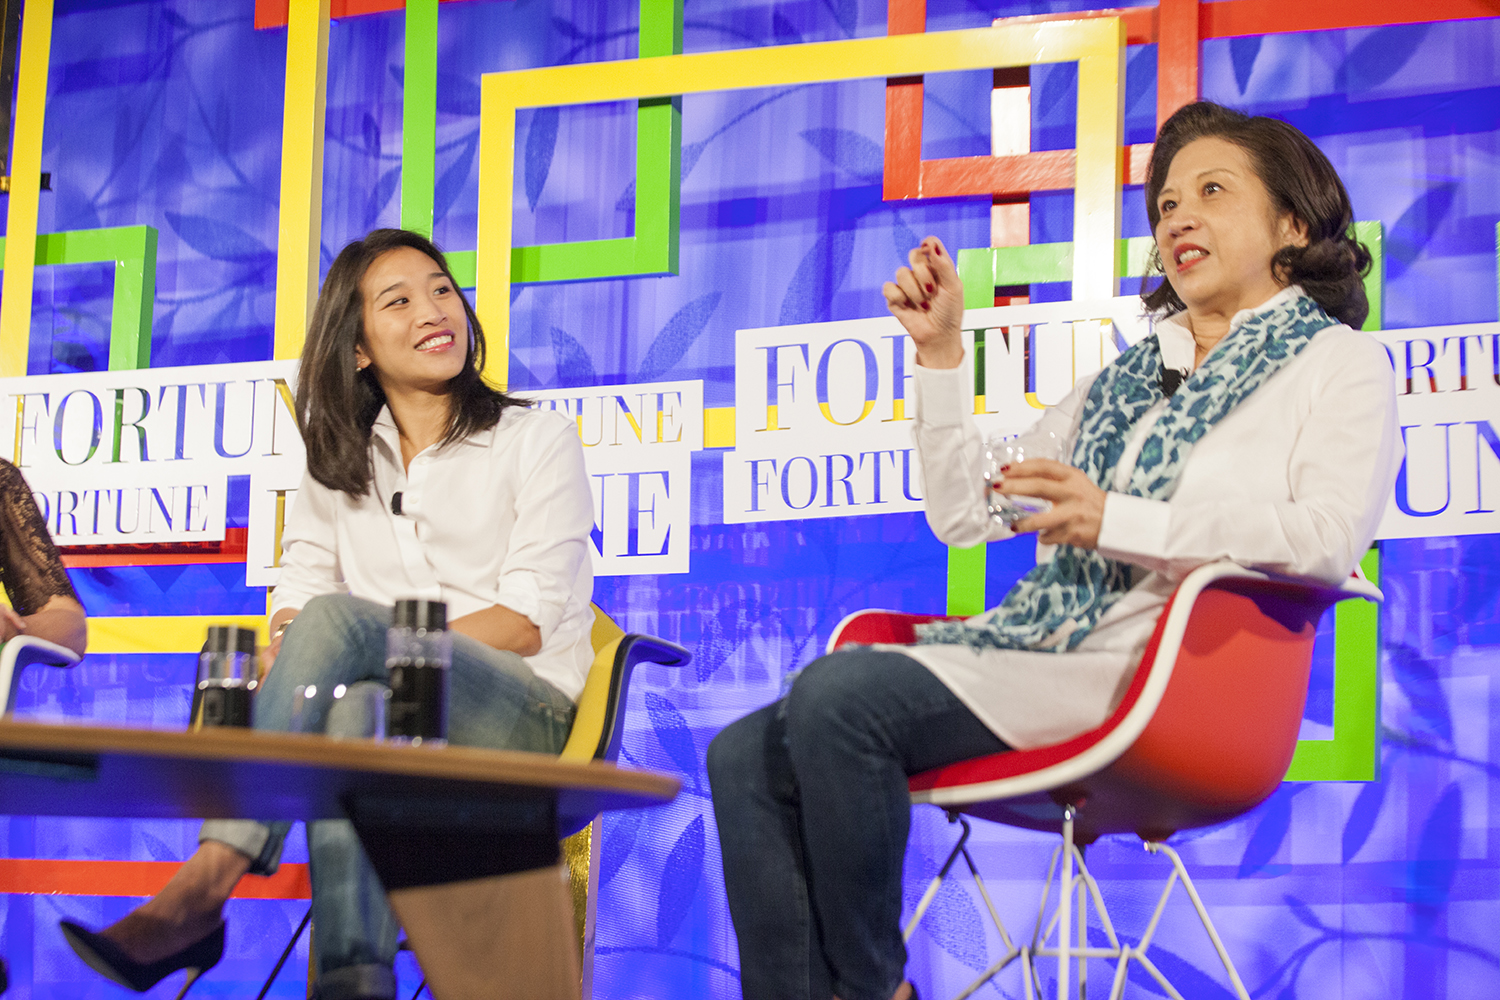 FAMILY BUSINESS: A MOTHER-DAUGHTER DUETDee Poon, Chief Executive Officer, PYEMarjorie Yang, Chairman, Esquel GroupModerator: Nina Easton, Fortune- See more at: http://www.fortuneconferences.com/mpwi-asia-2014/agenda-overview-2/#sthash.6sVHwlBr.dpuf